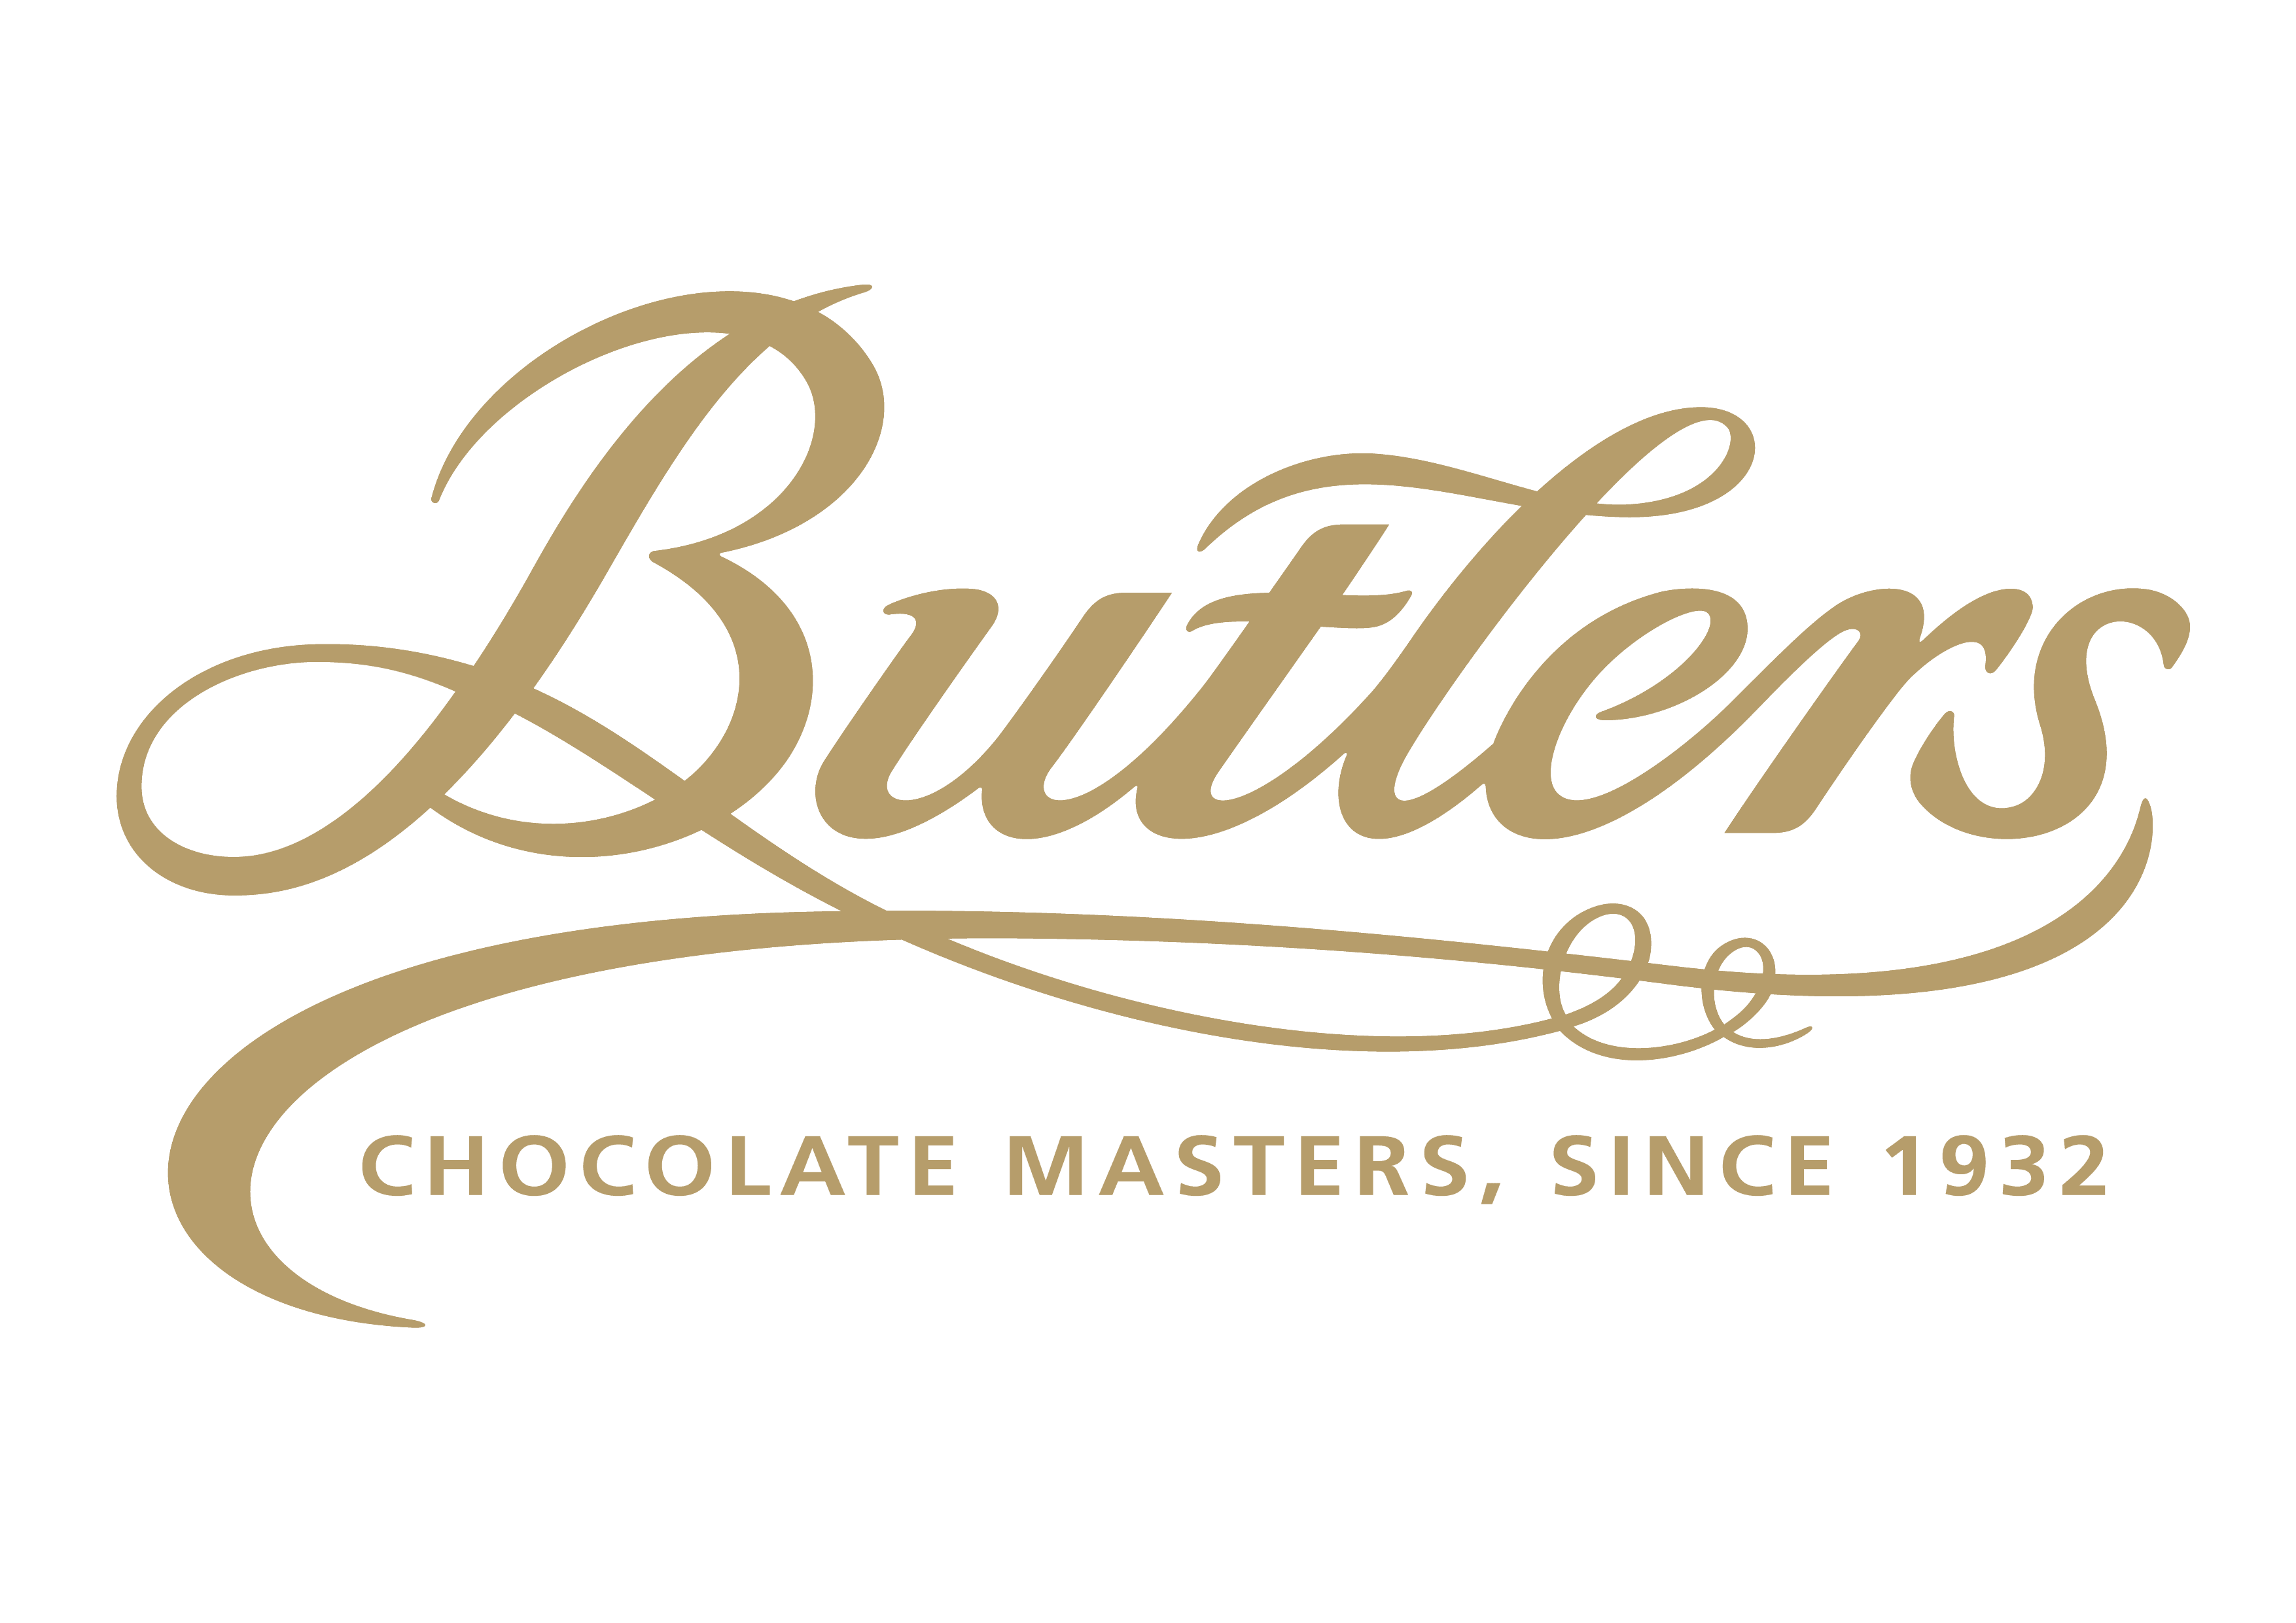 Butlers Chocolates - Official Website